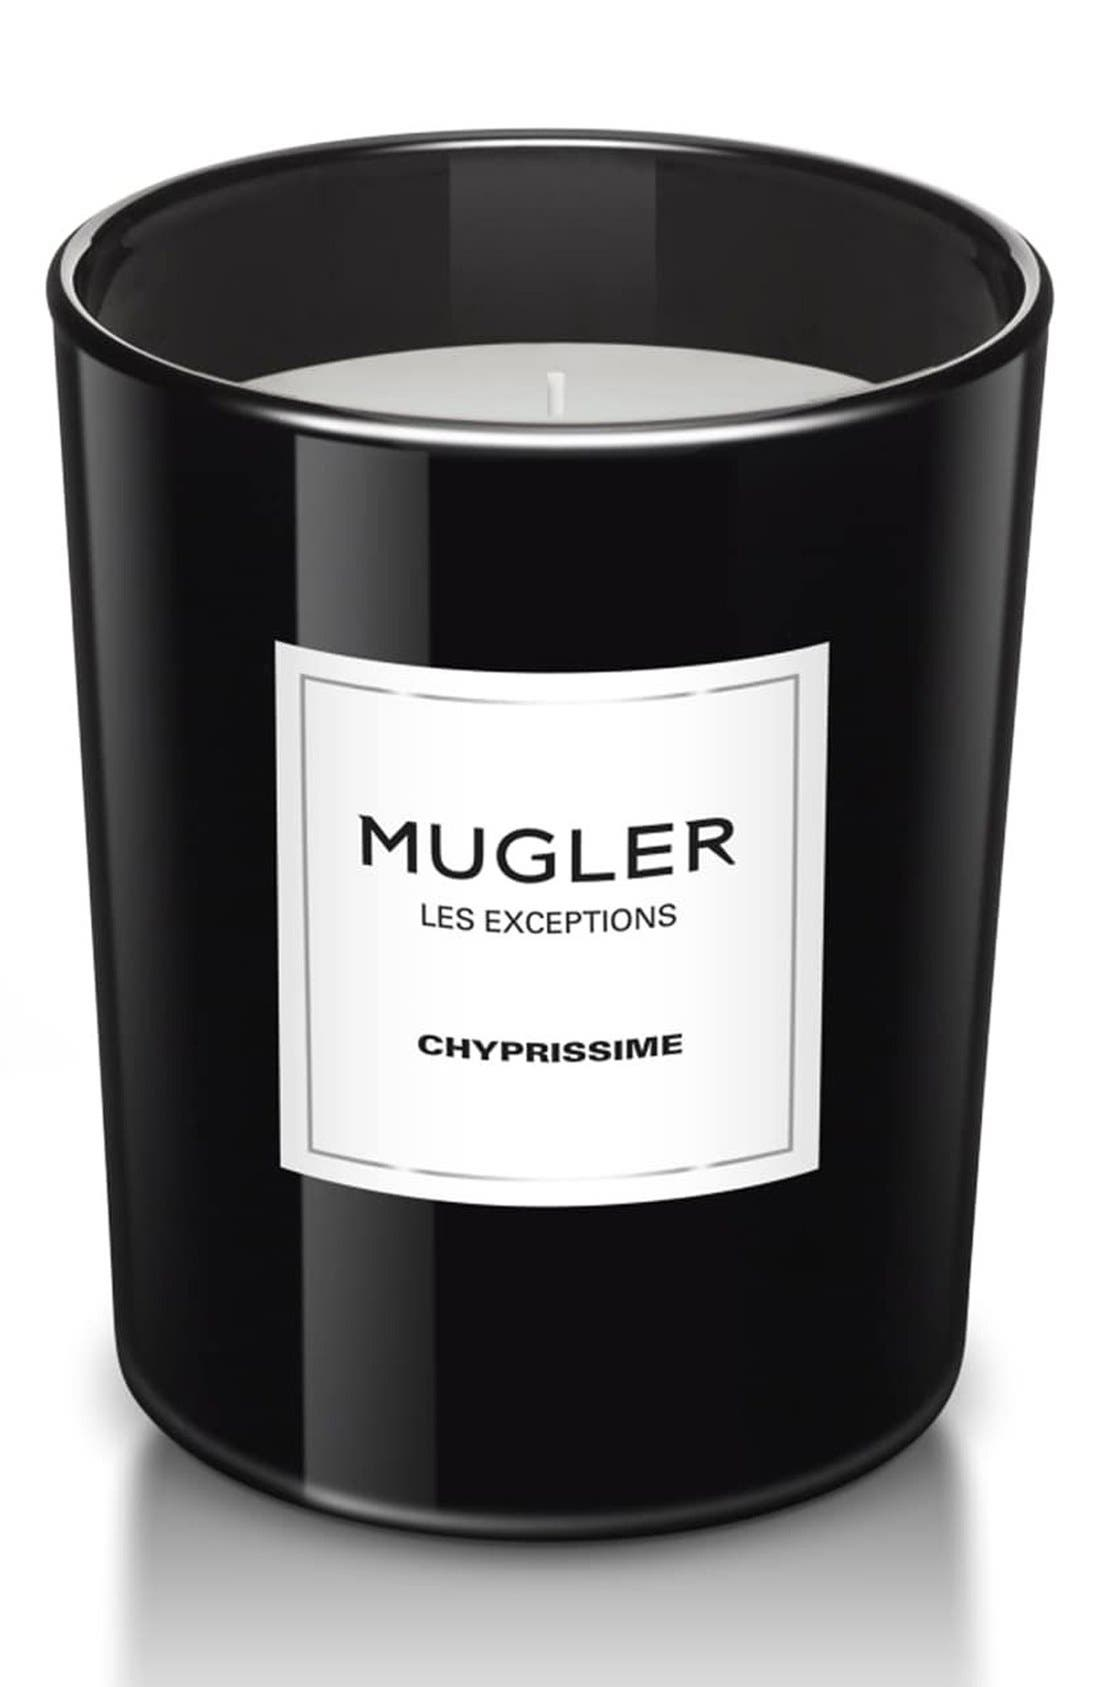 Main Image - Mugler 'Les Exceptions - Chyprissime' Candle